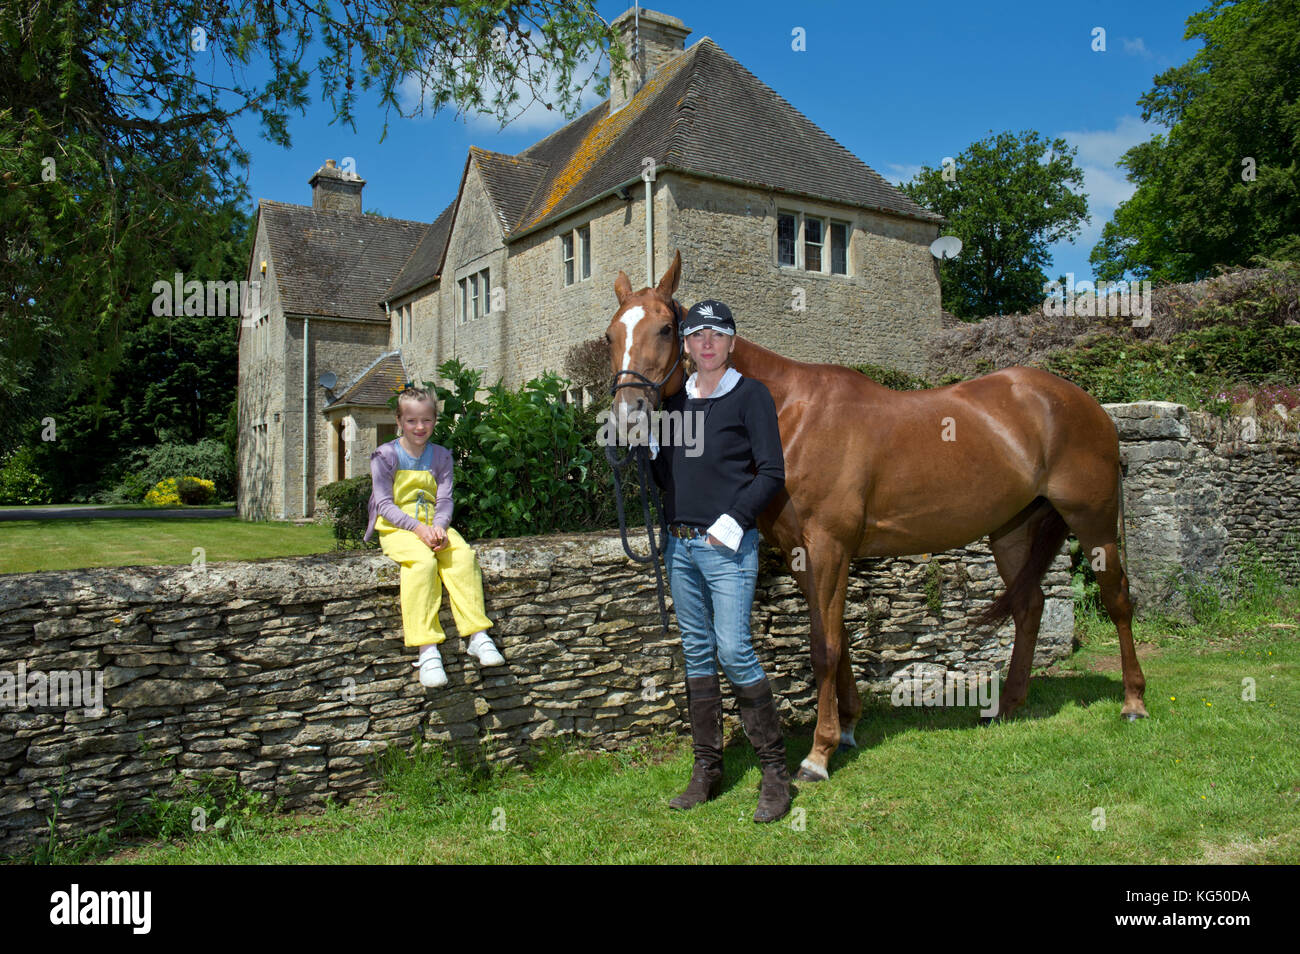 Kelly Luchford and daughter Lola (7) at her house in Gloucestershire. - Stock Image